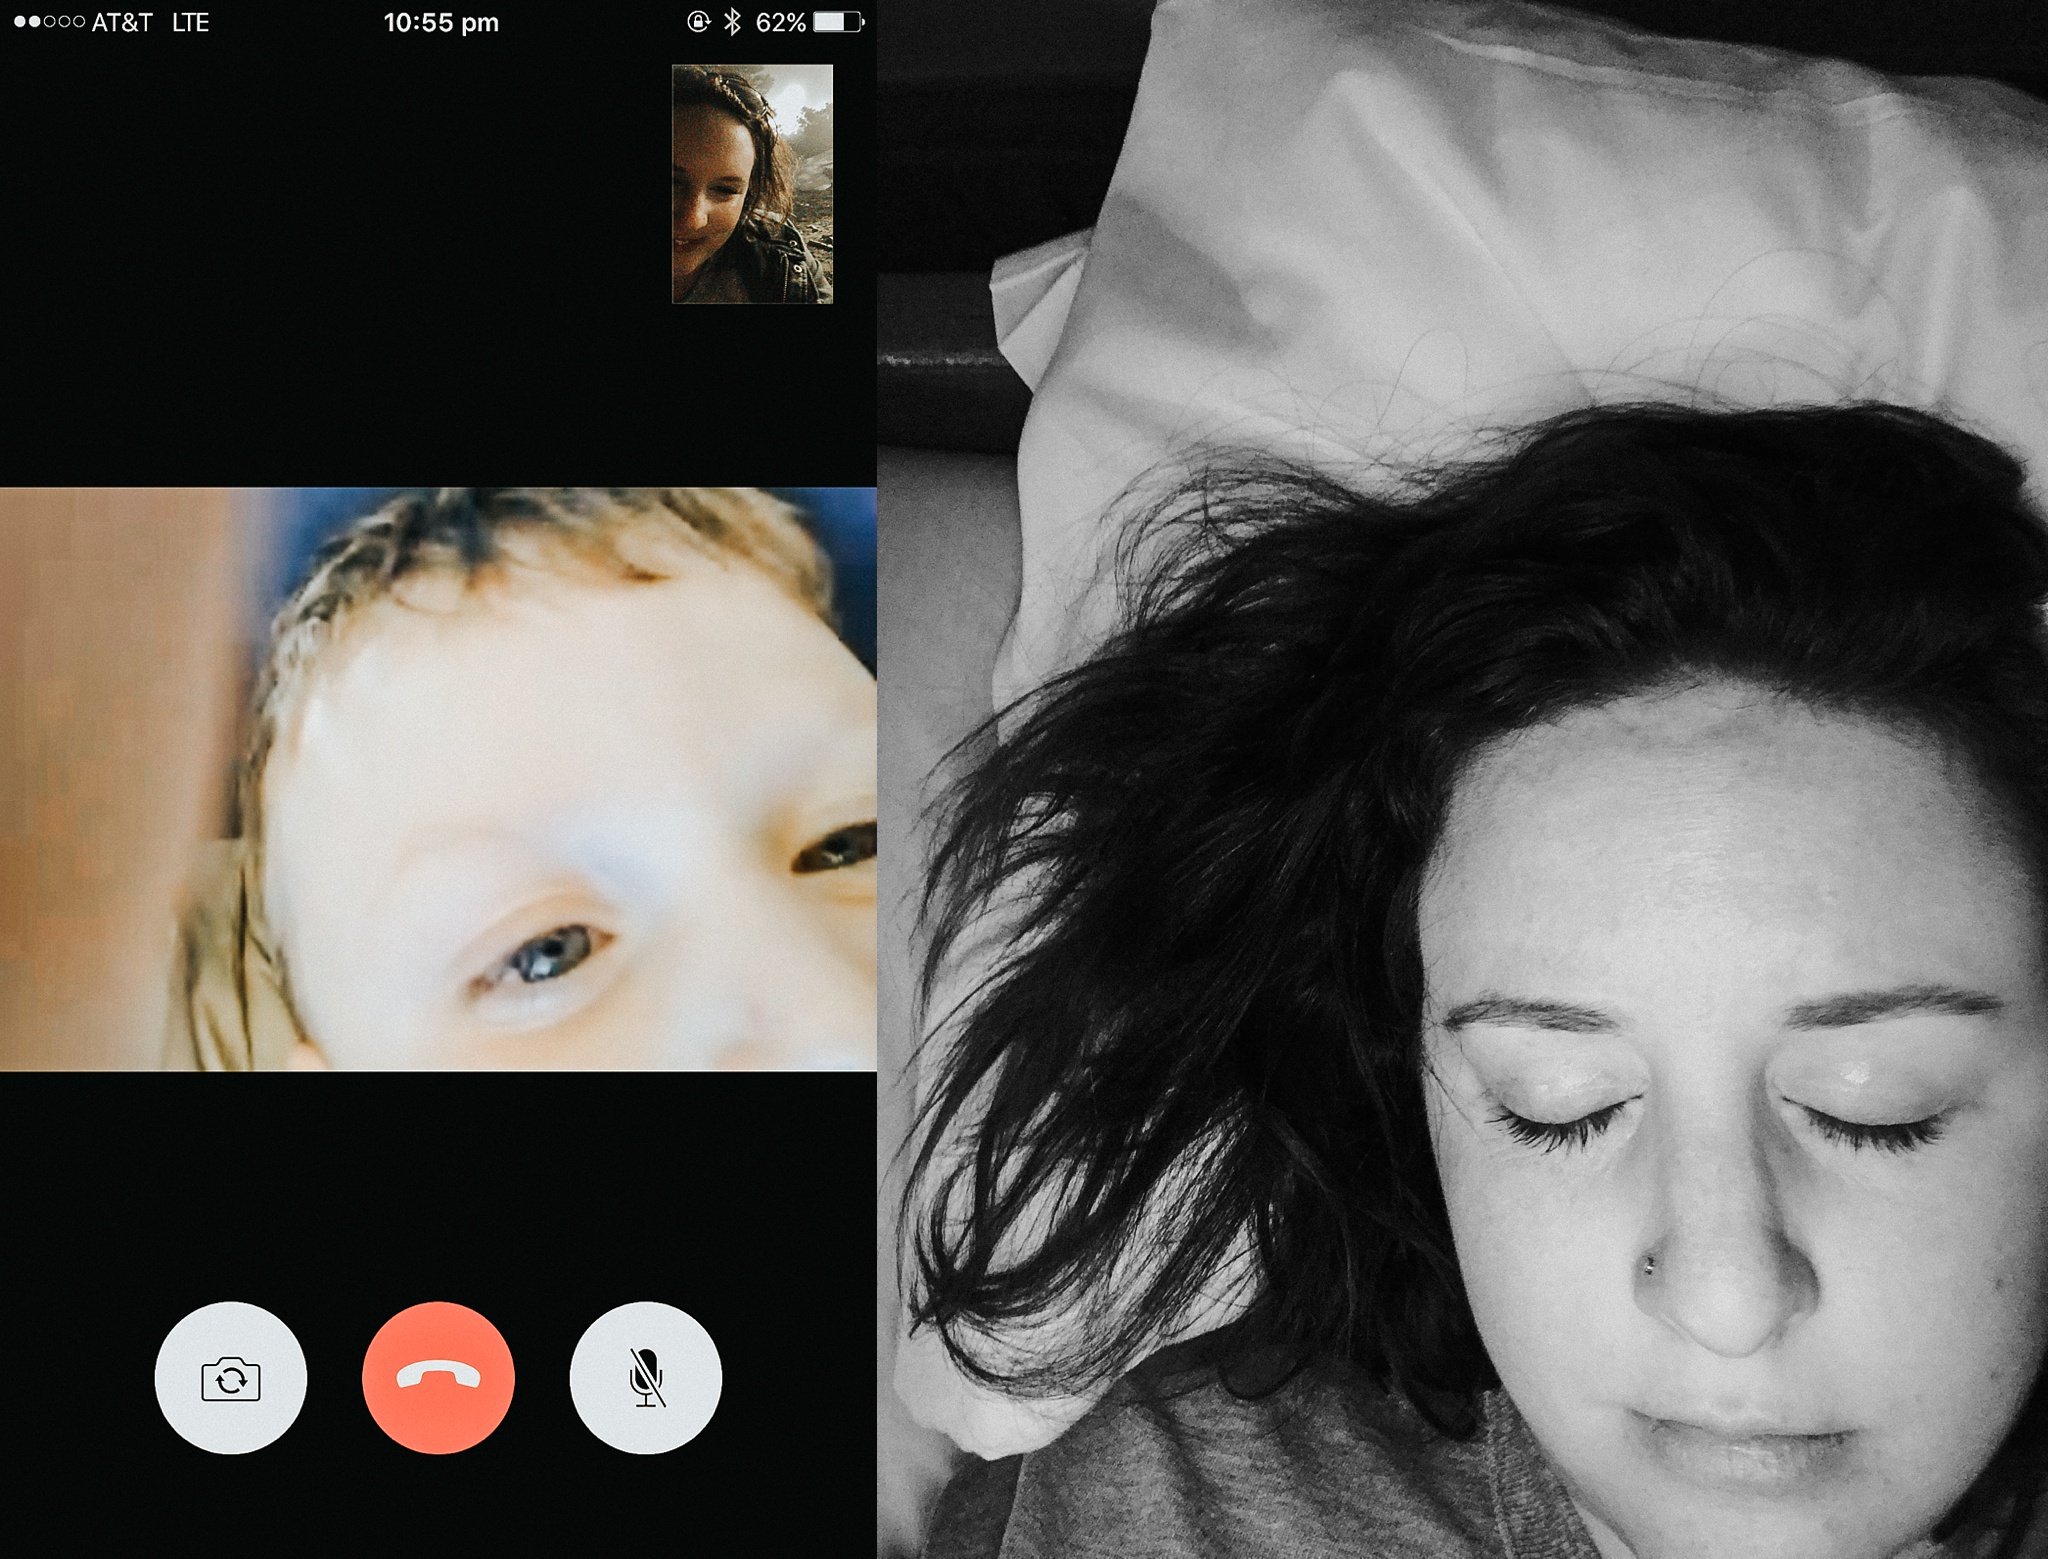 Drunk skyping with my babe, and ready to pass out. Too much everything.